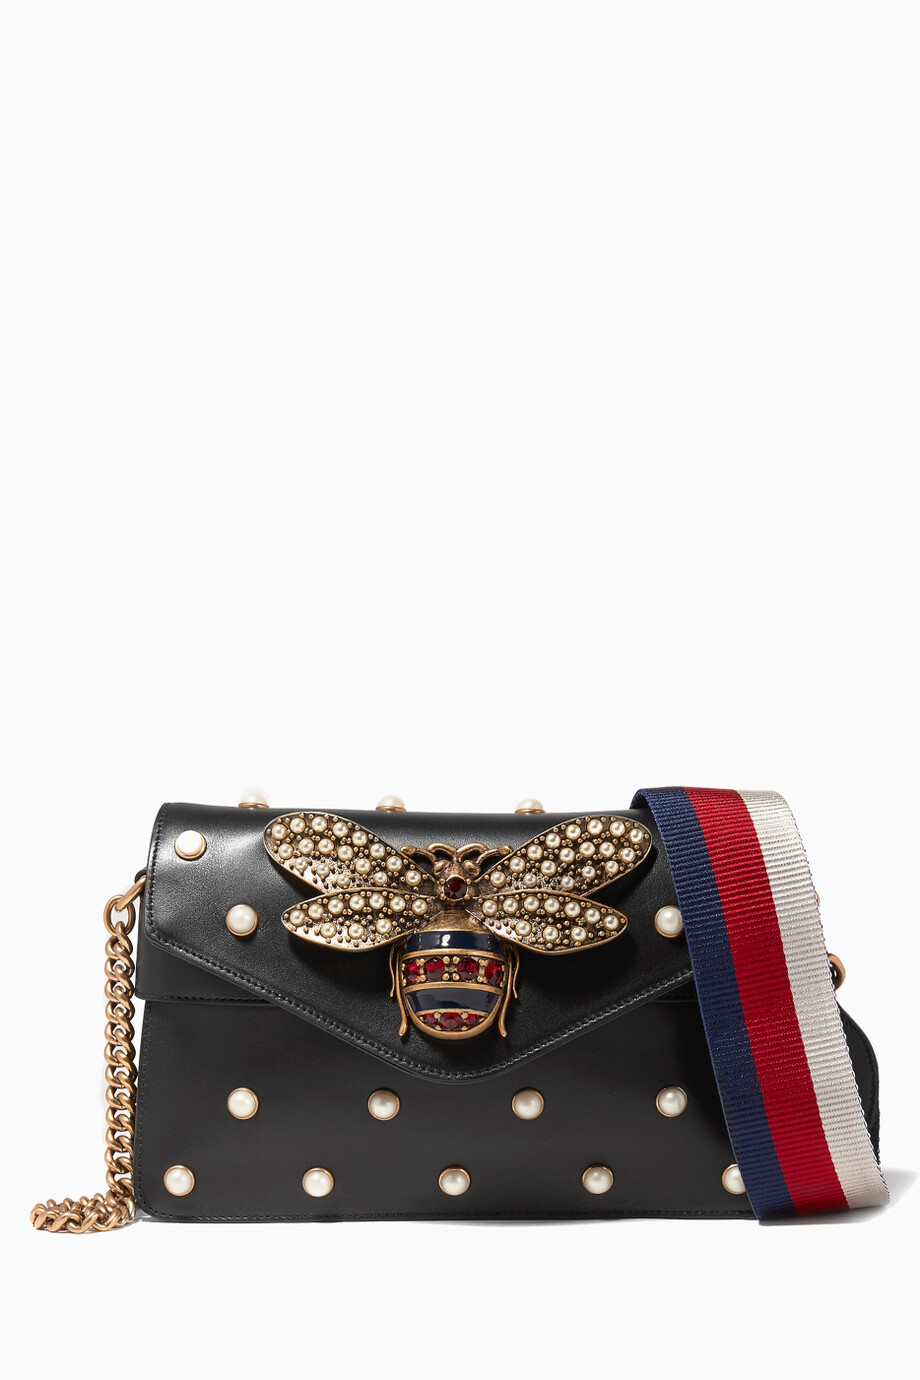 1881e9f7312 Shop Gucci Black Black Broadway Leather Chain Clutch for Women ...